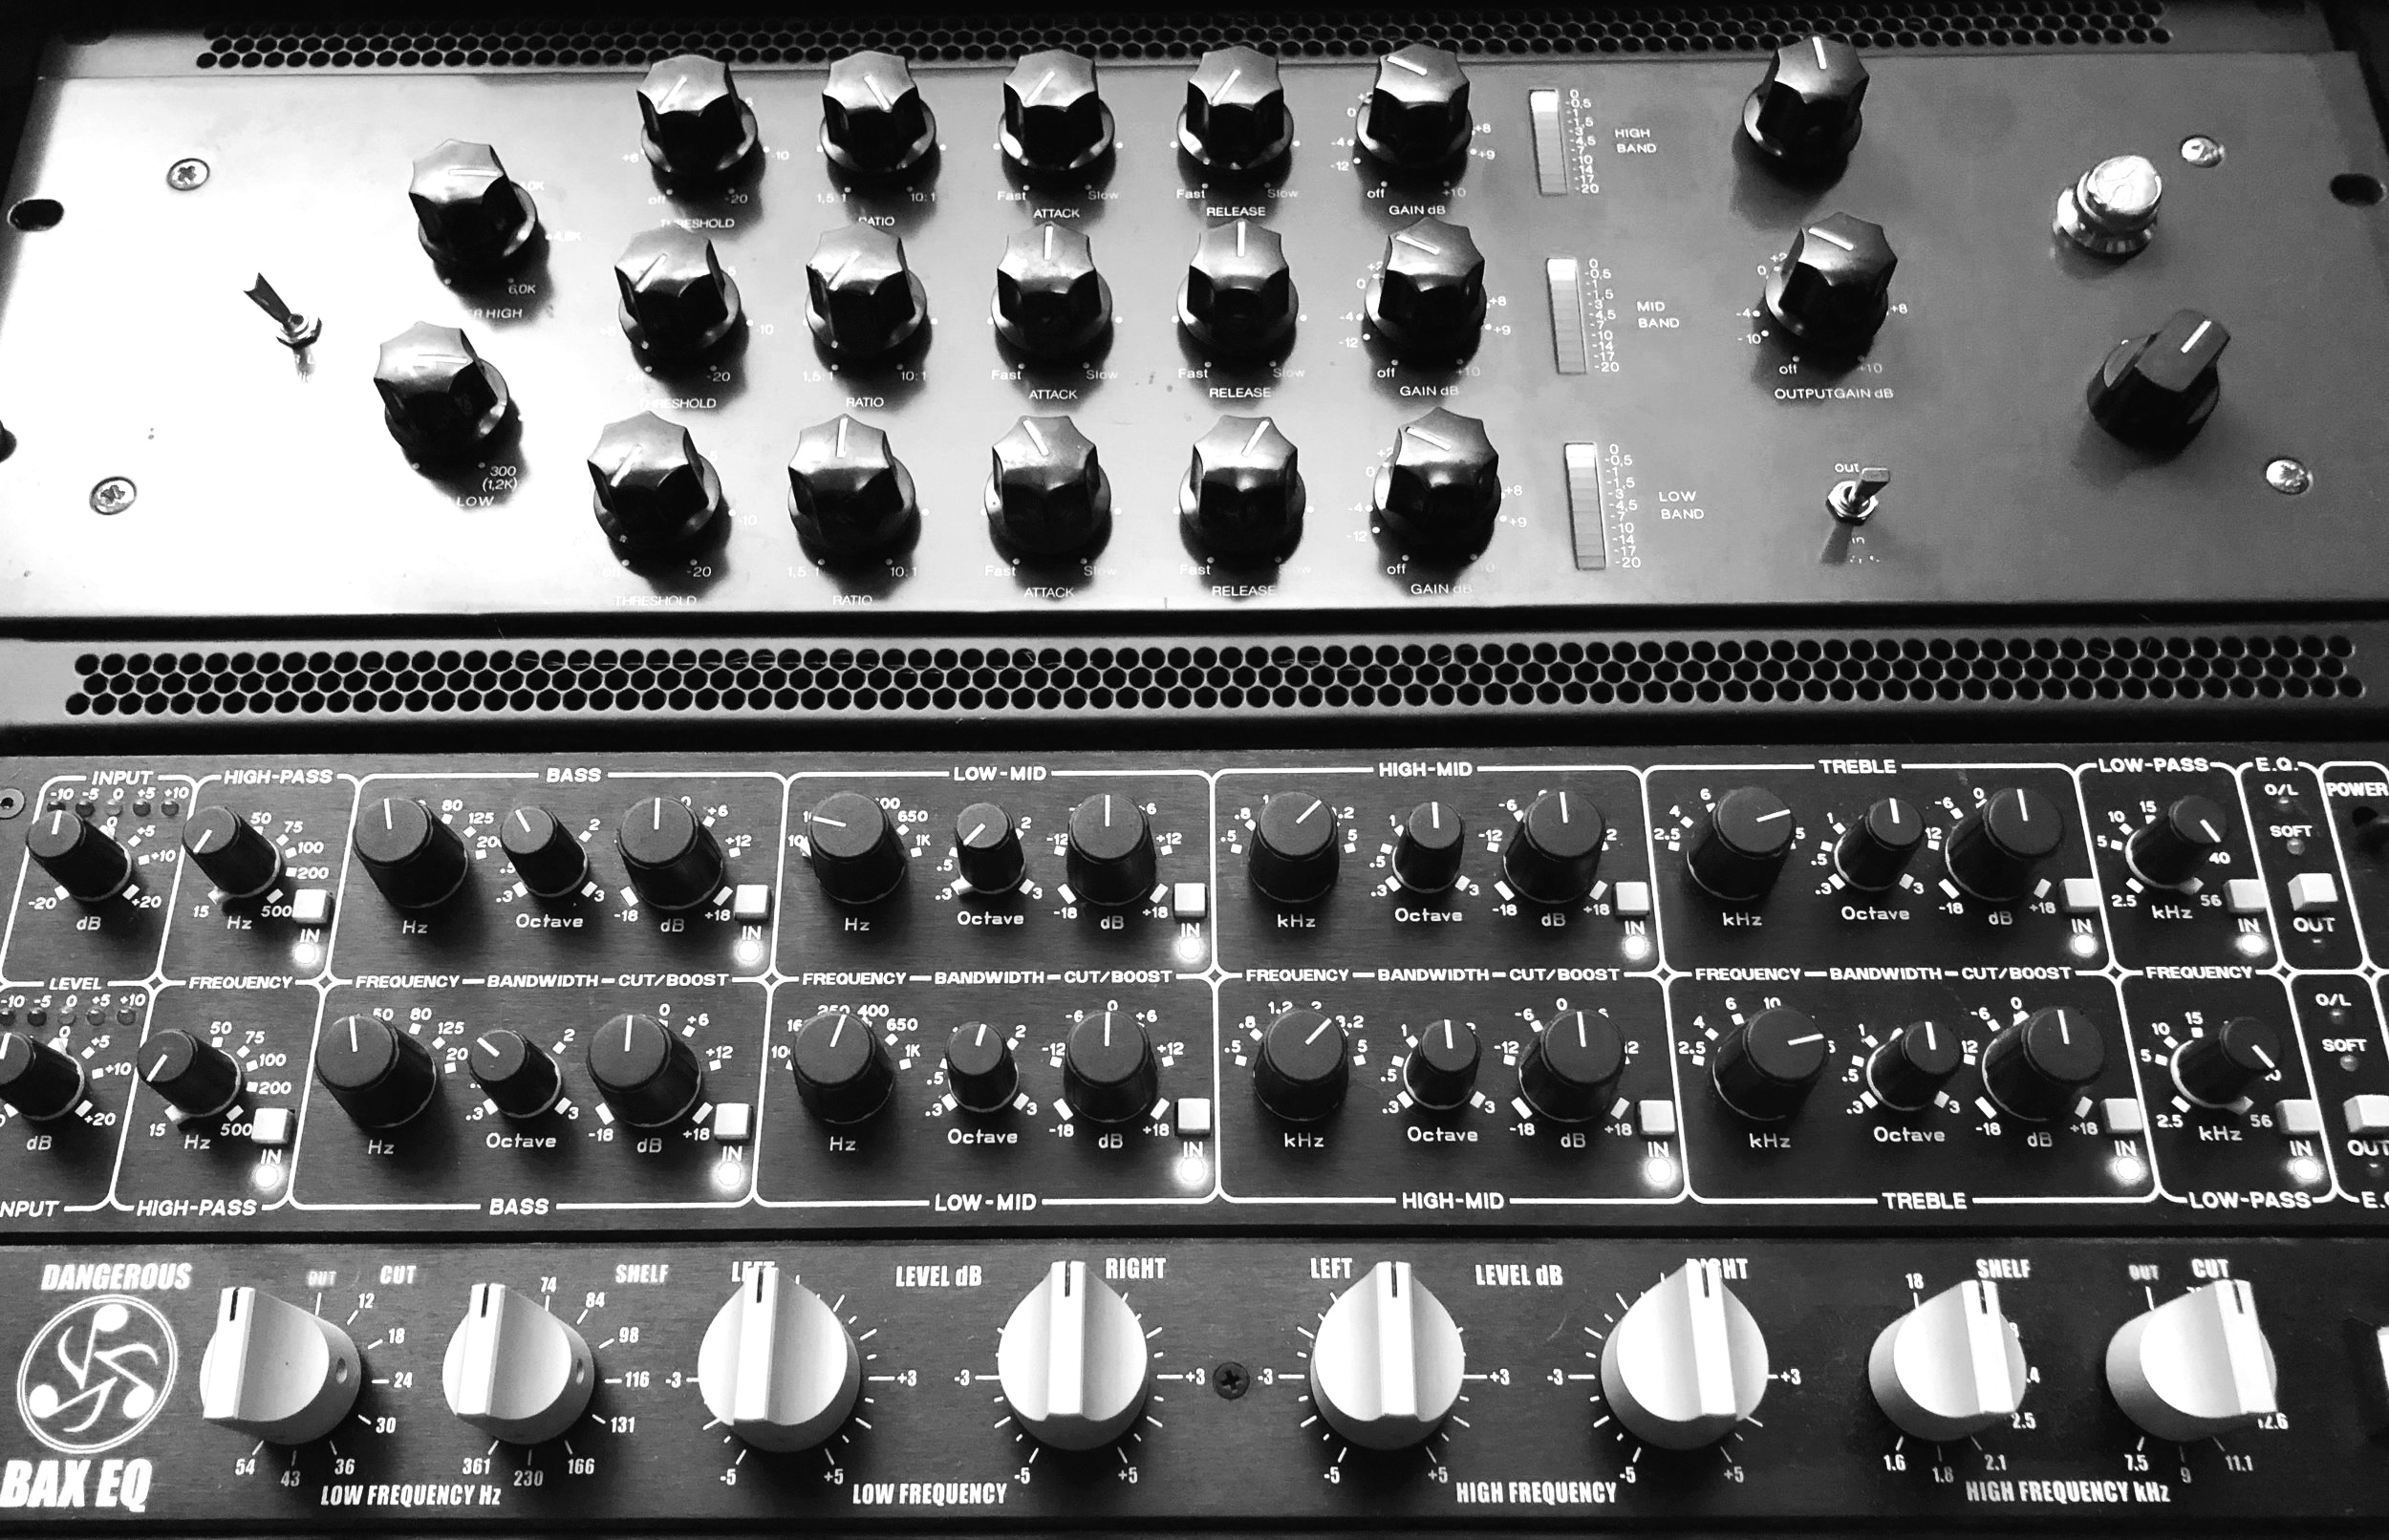 Trakworx Mastering Studio Tube-Tech SMC2b, Drawmer 1961 Tube EQ, Dangerous Bax EQ